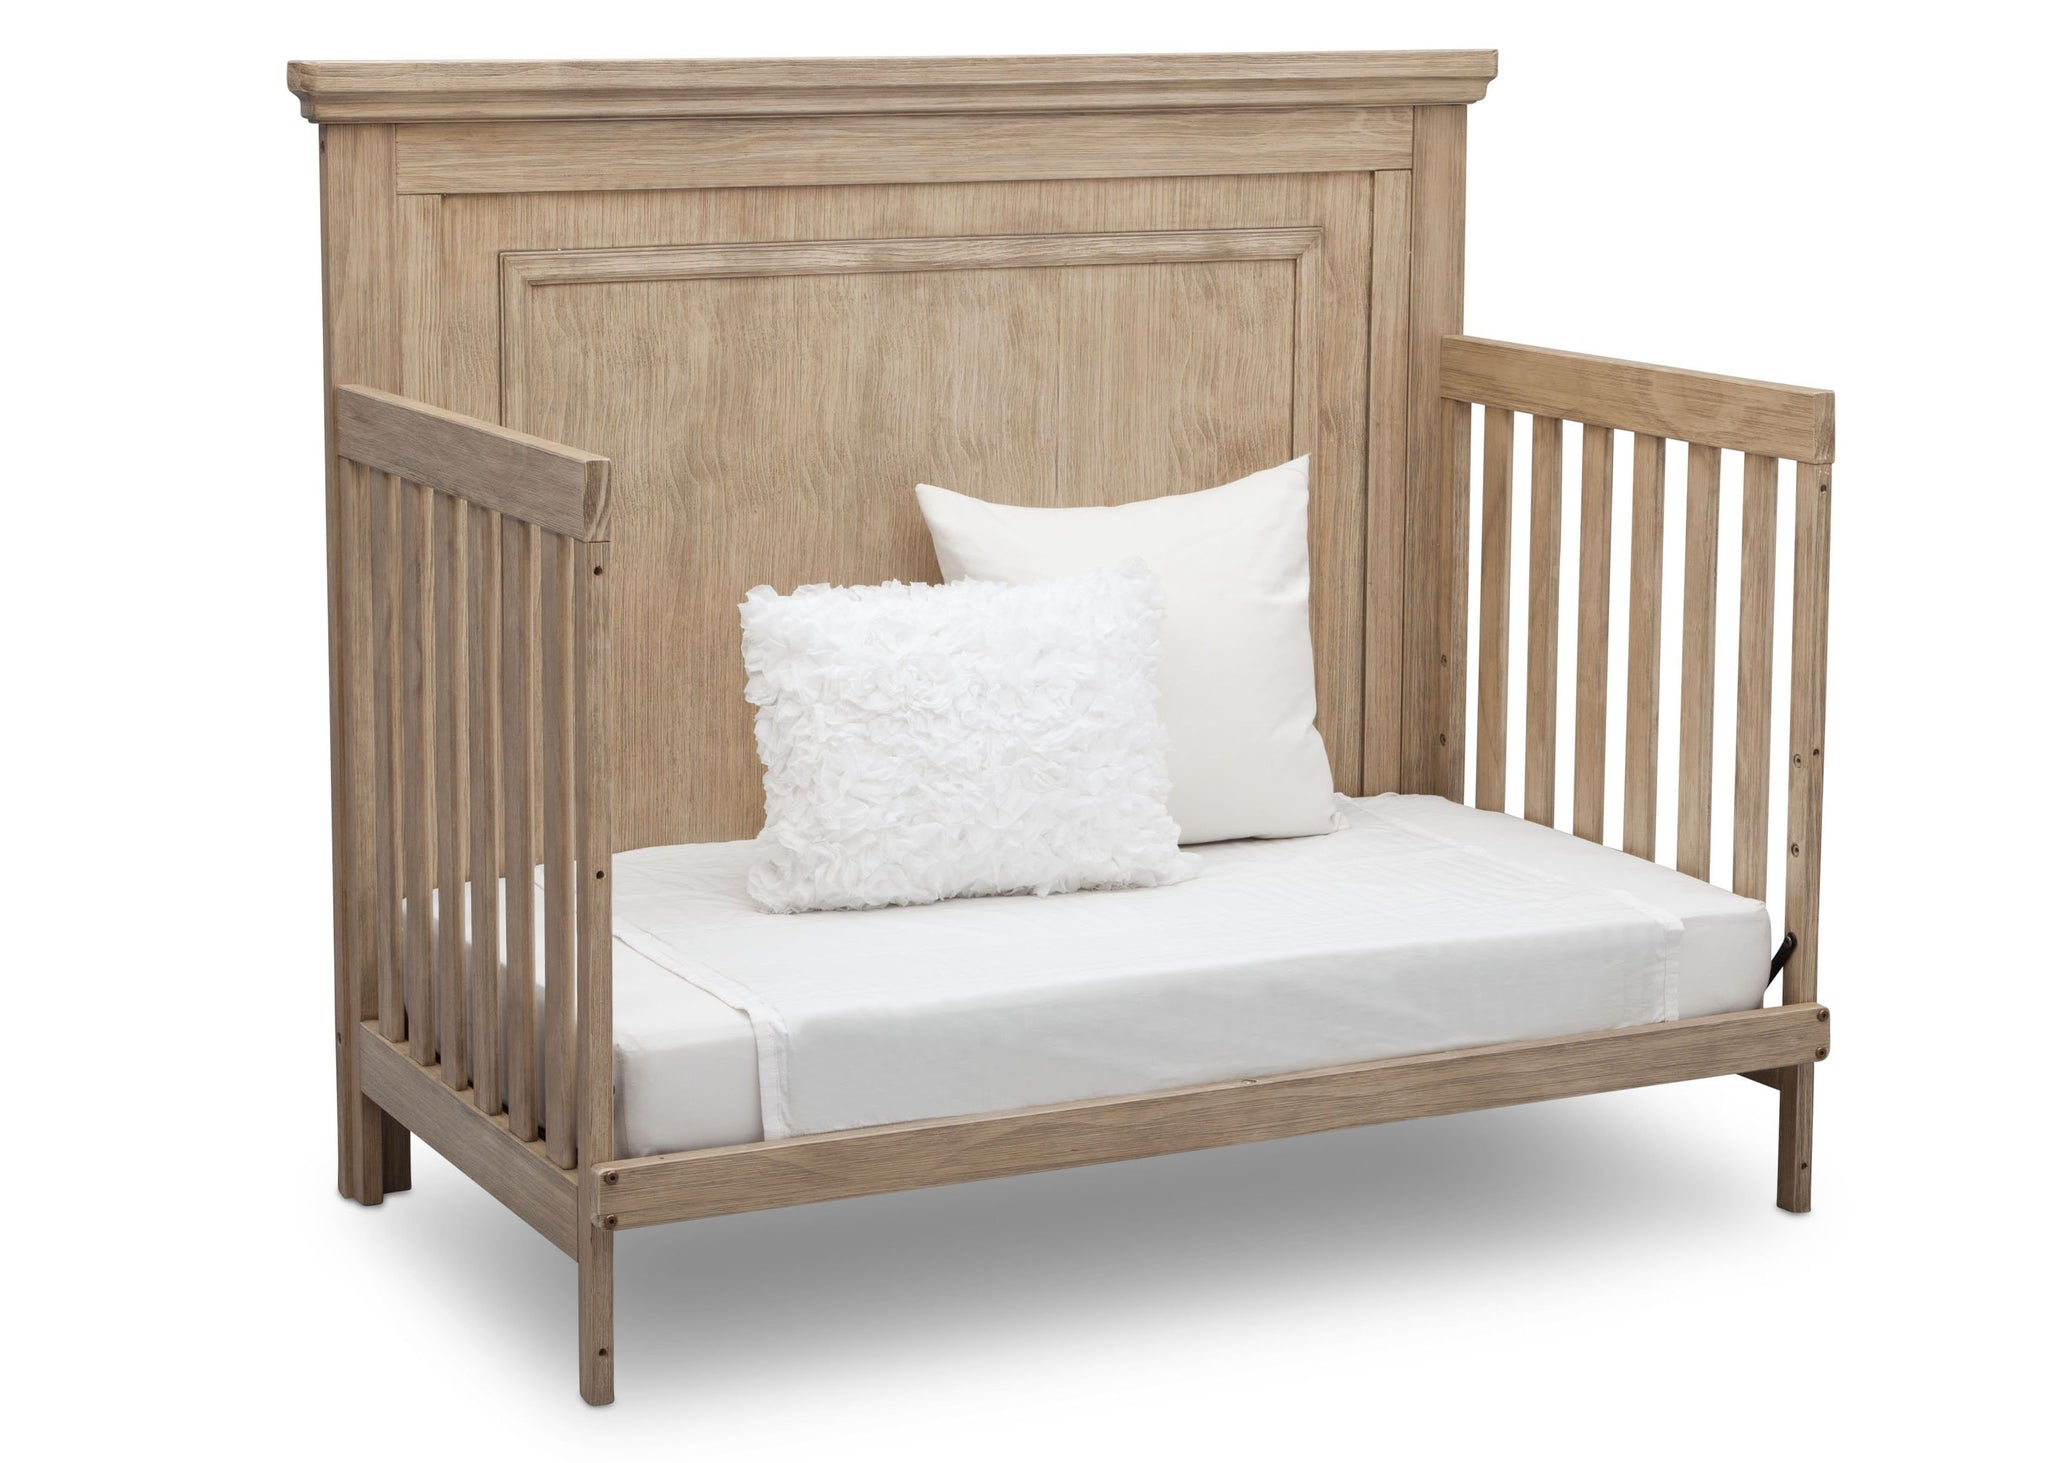 Simmons Rustic Driftwood (112) Paloma 4-in-1 Convertible Crib (328150), Silo Daybed, b5b